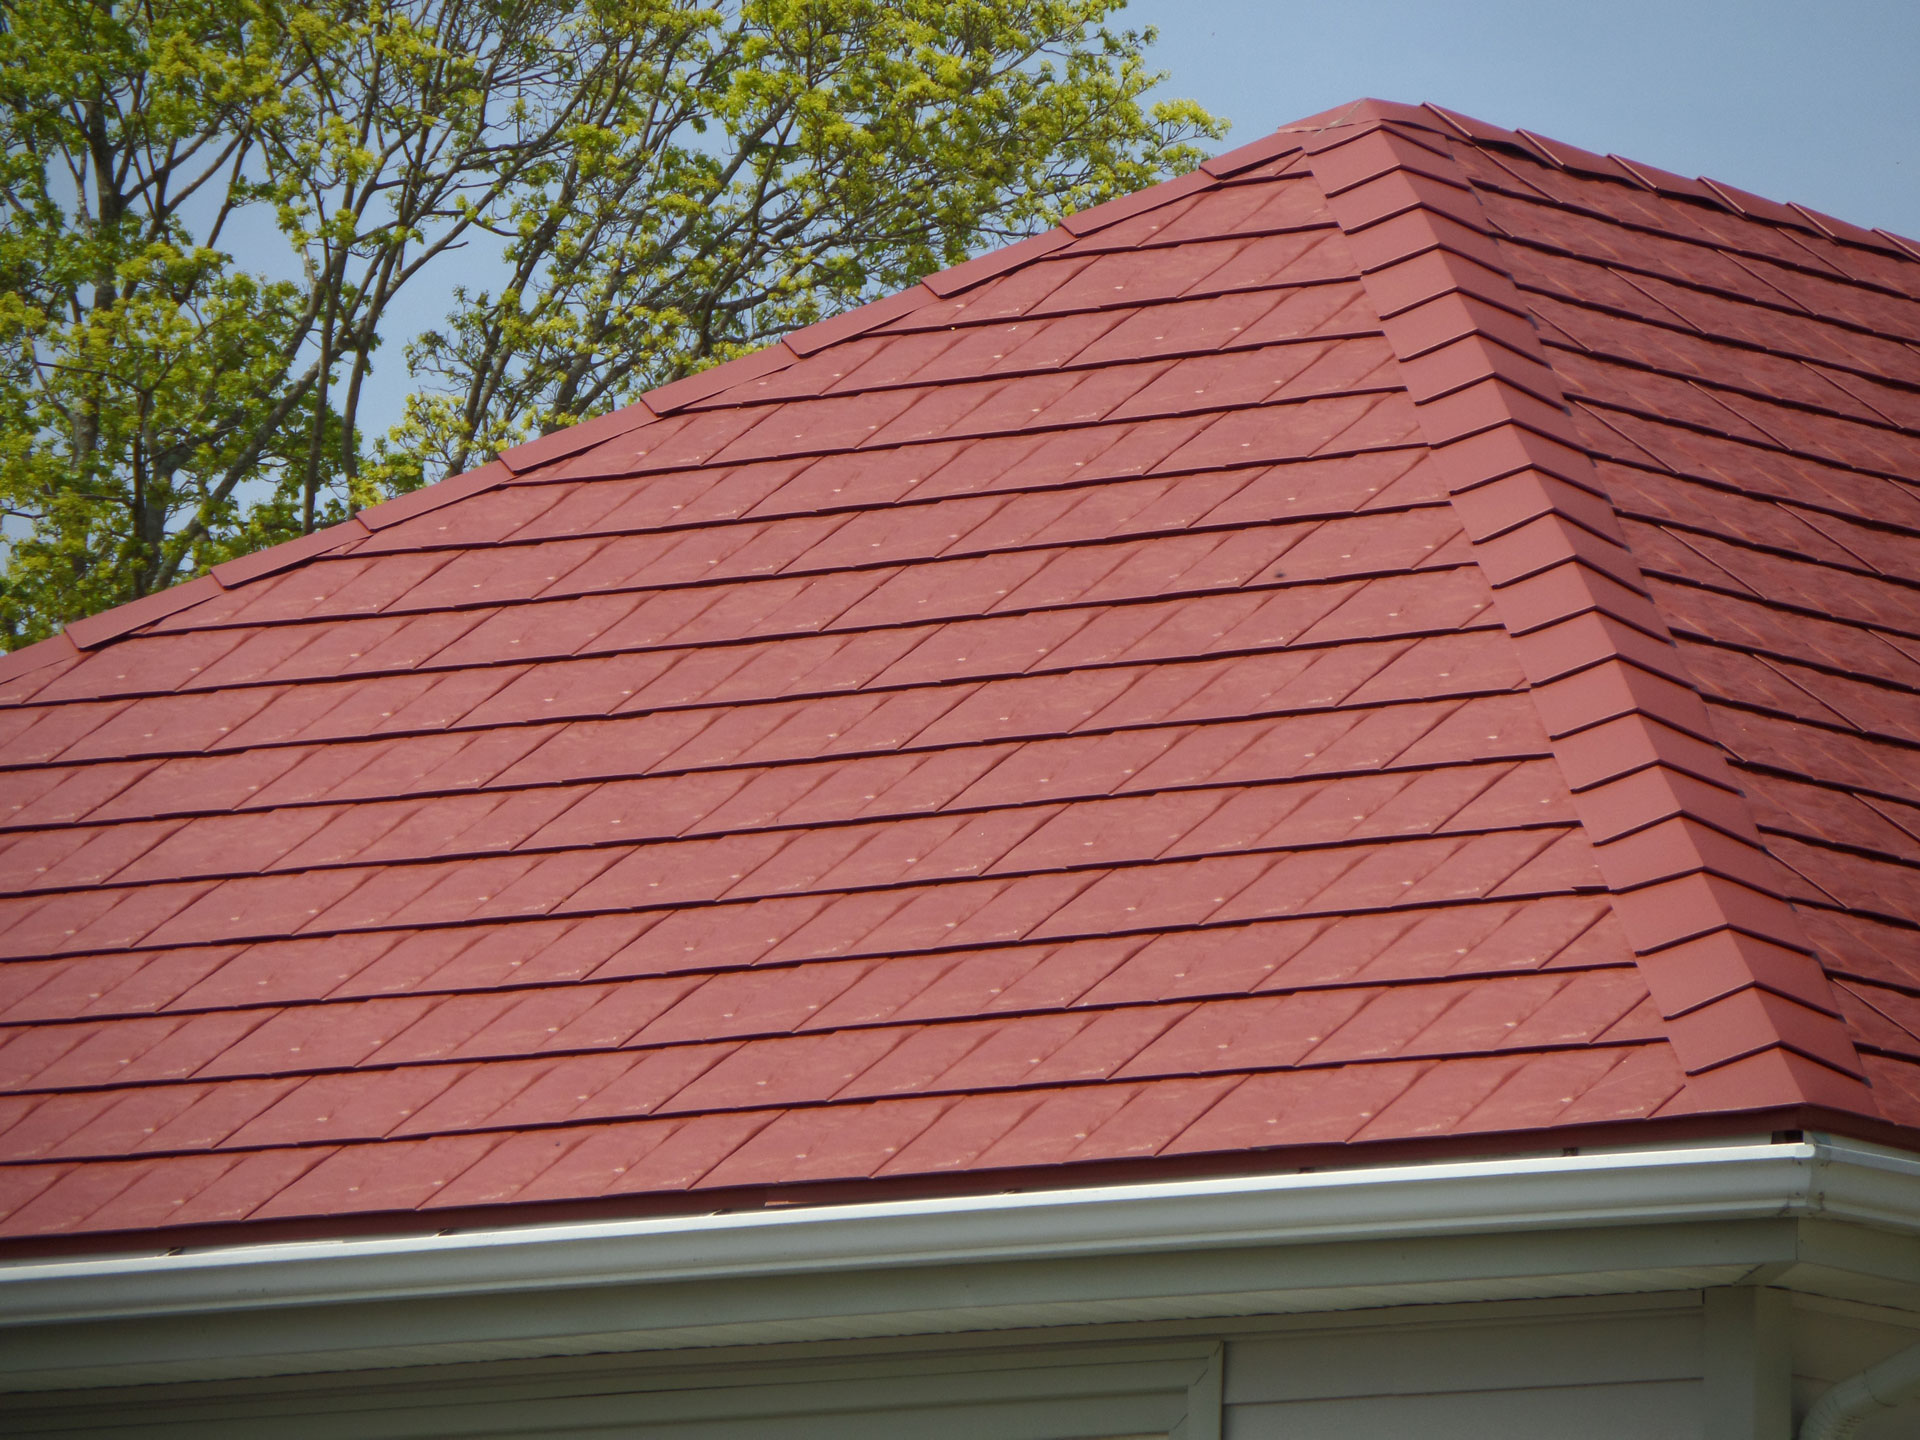 new-metal-shingles-roof